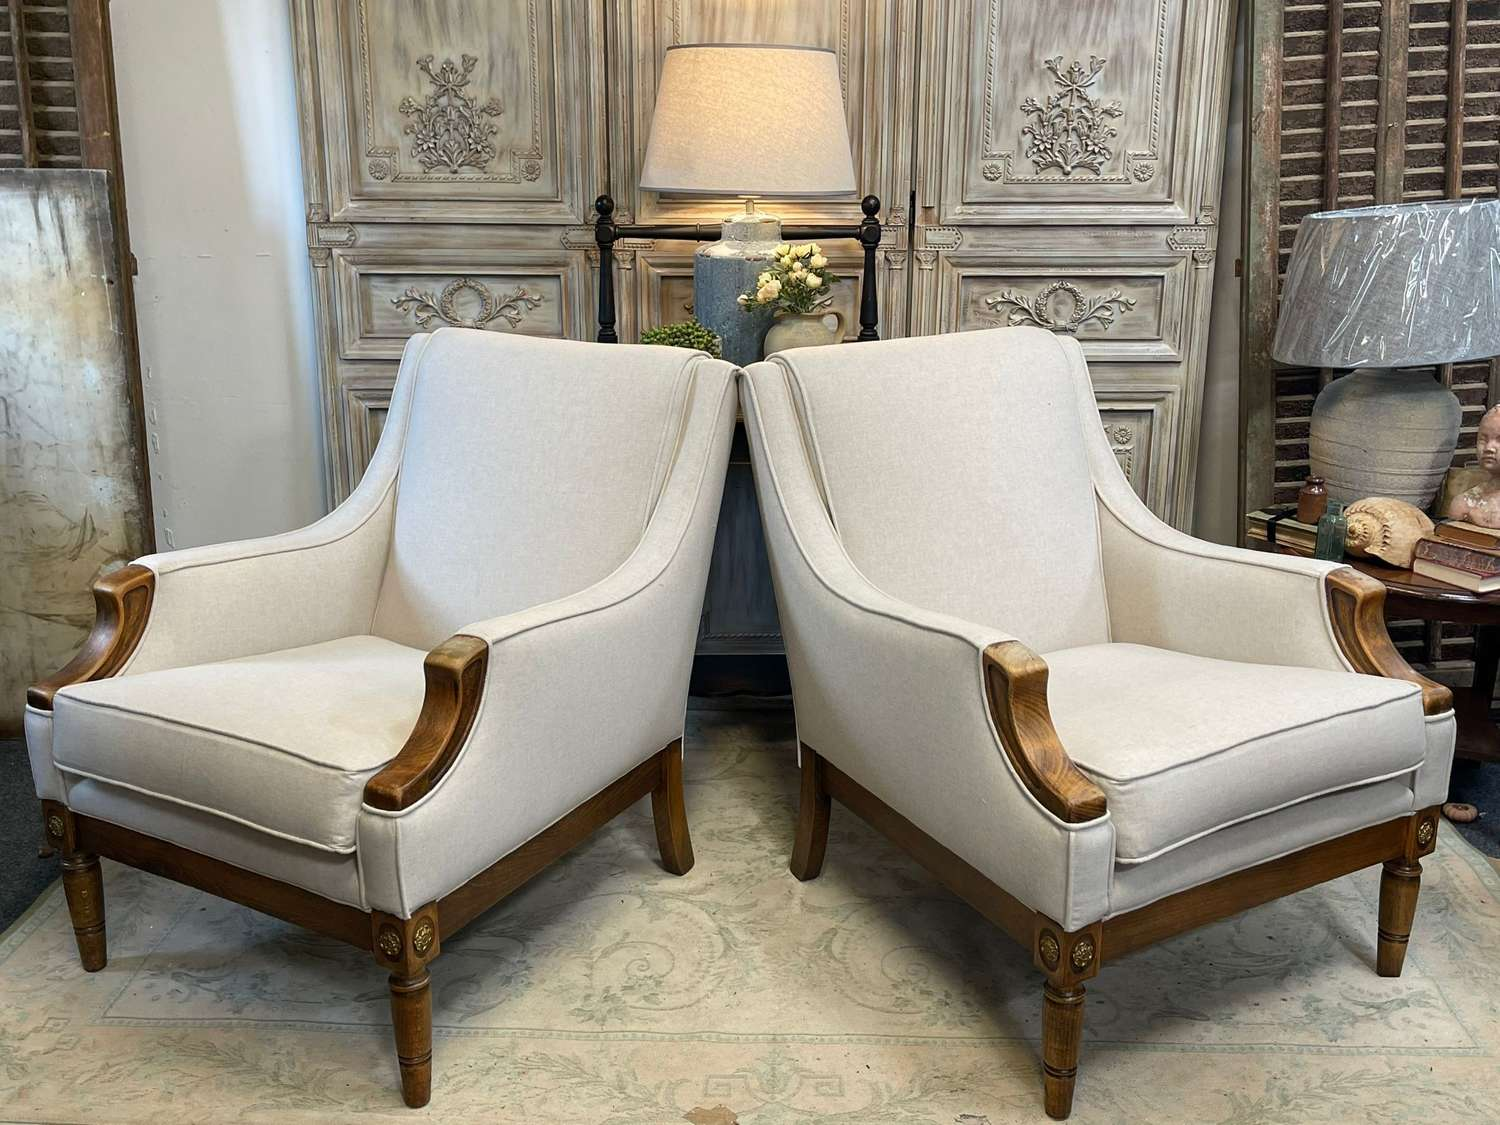 Empire style French armchairs